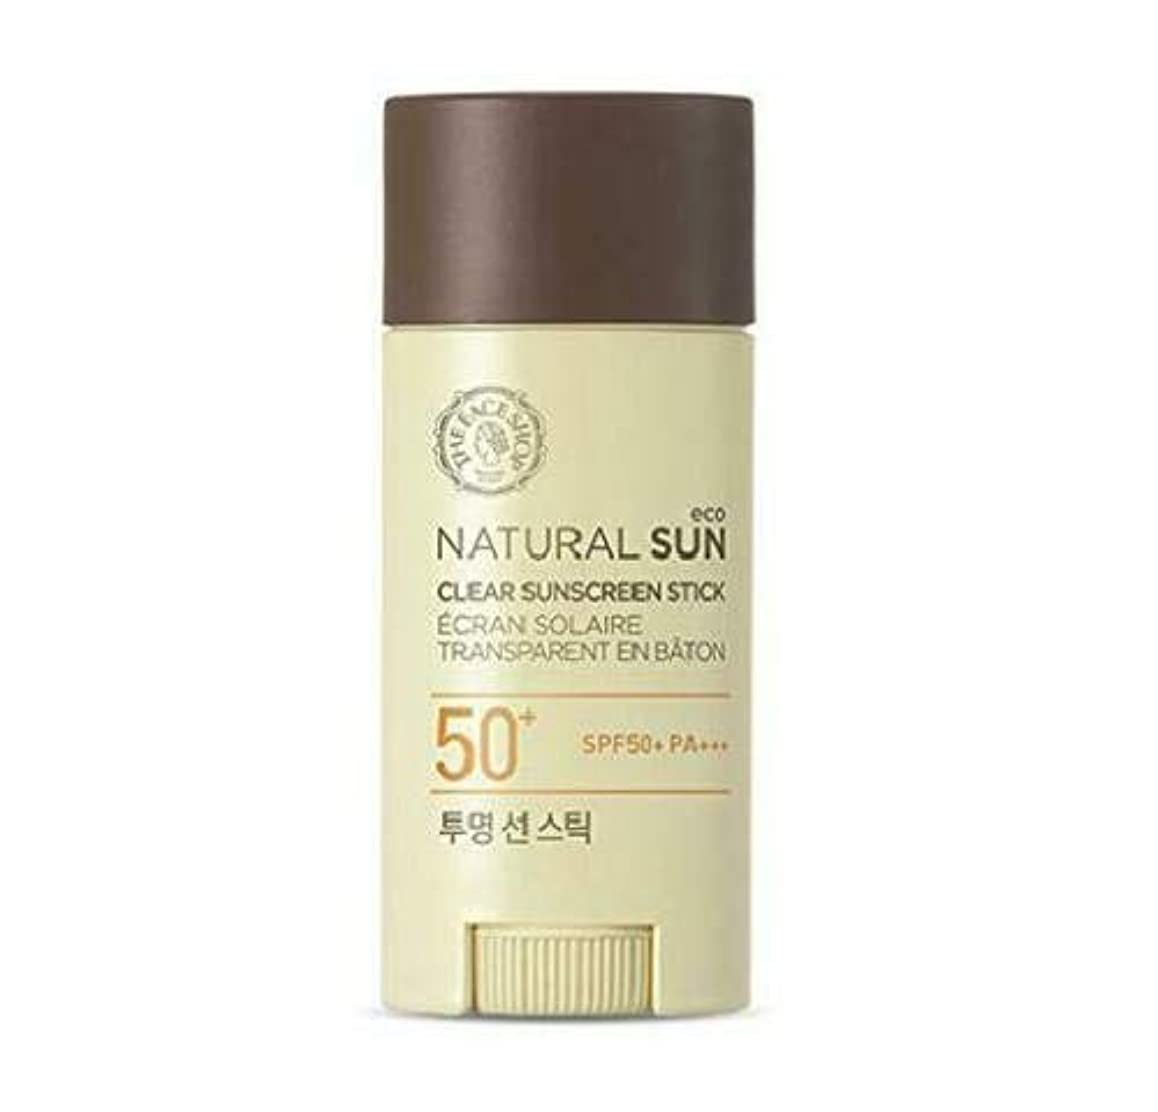 ザフェイスショップ(The Face Shop) Natural Eco Sun Clear Sunscreen Stick サンスティック (13.5g) SPF50+ PA+++